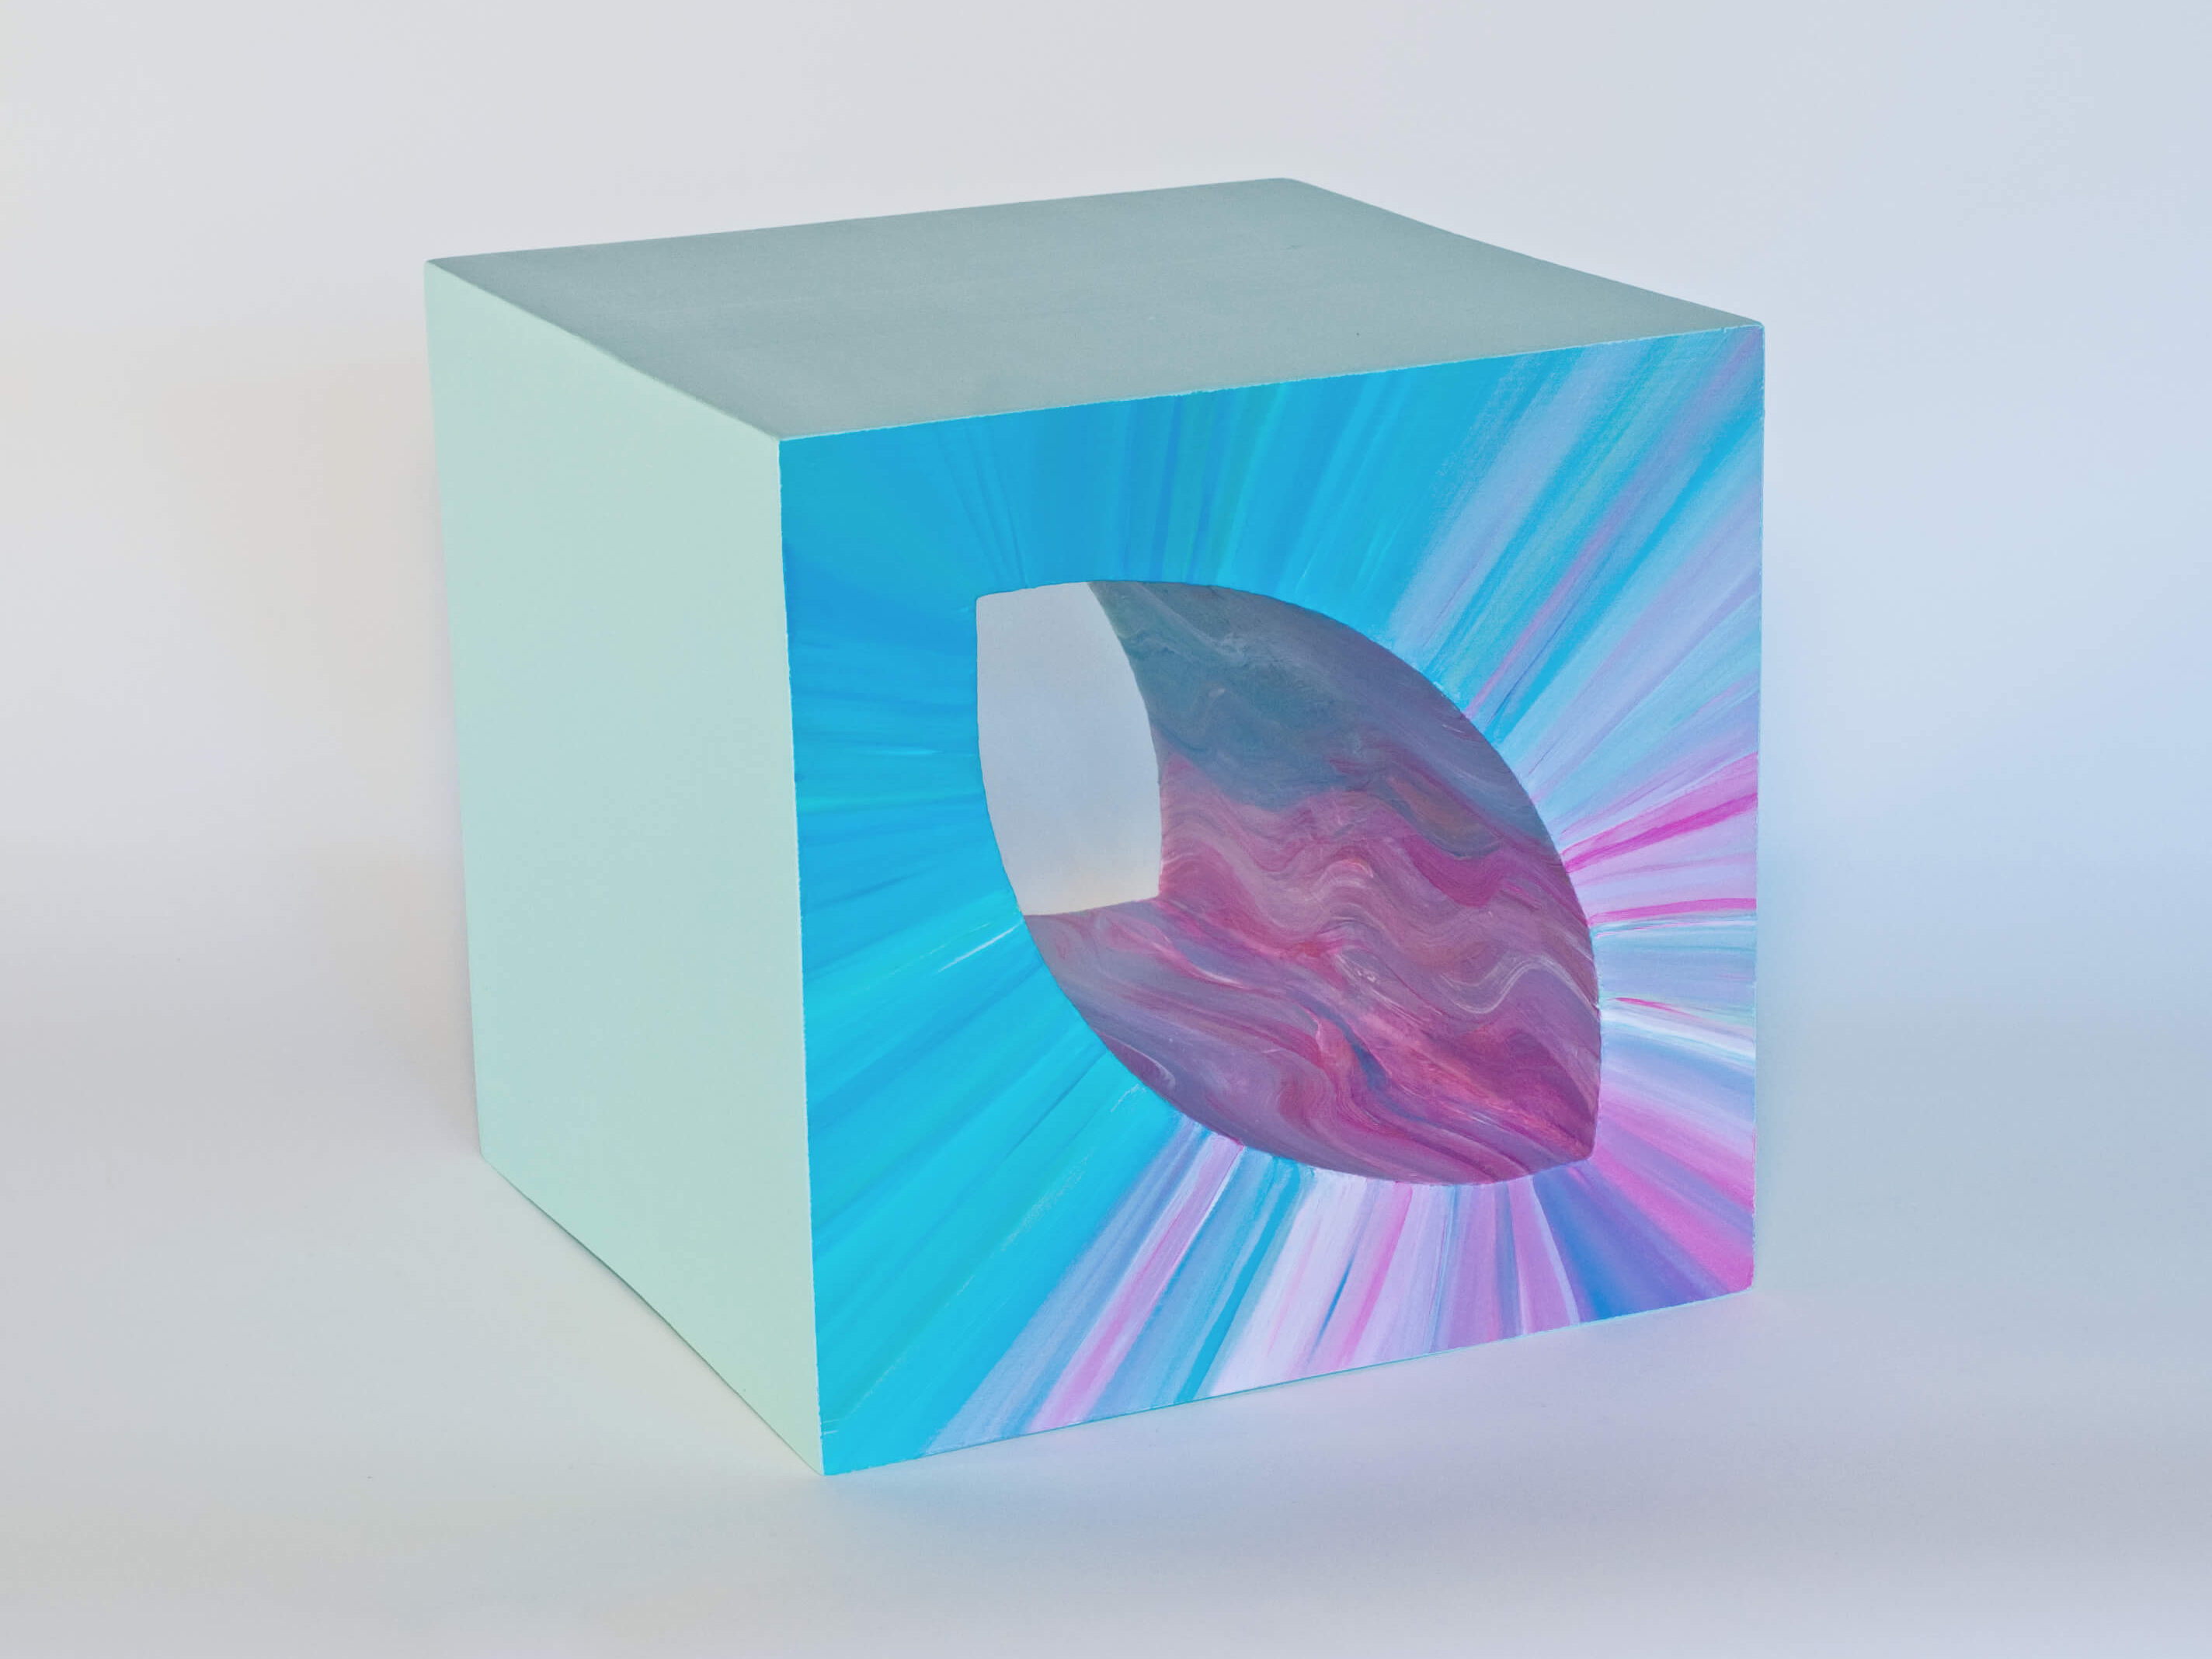 Sculpture AQUA CUBE 23 cm by Catherine De Bosscher